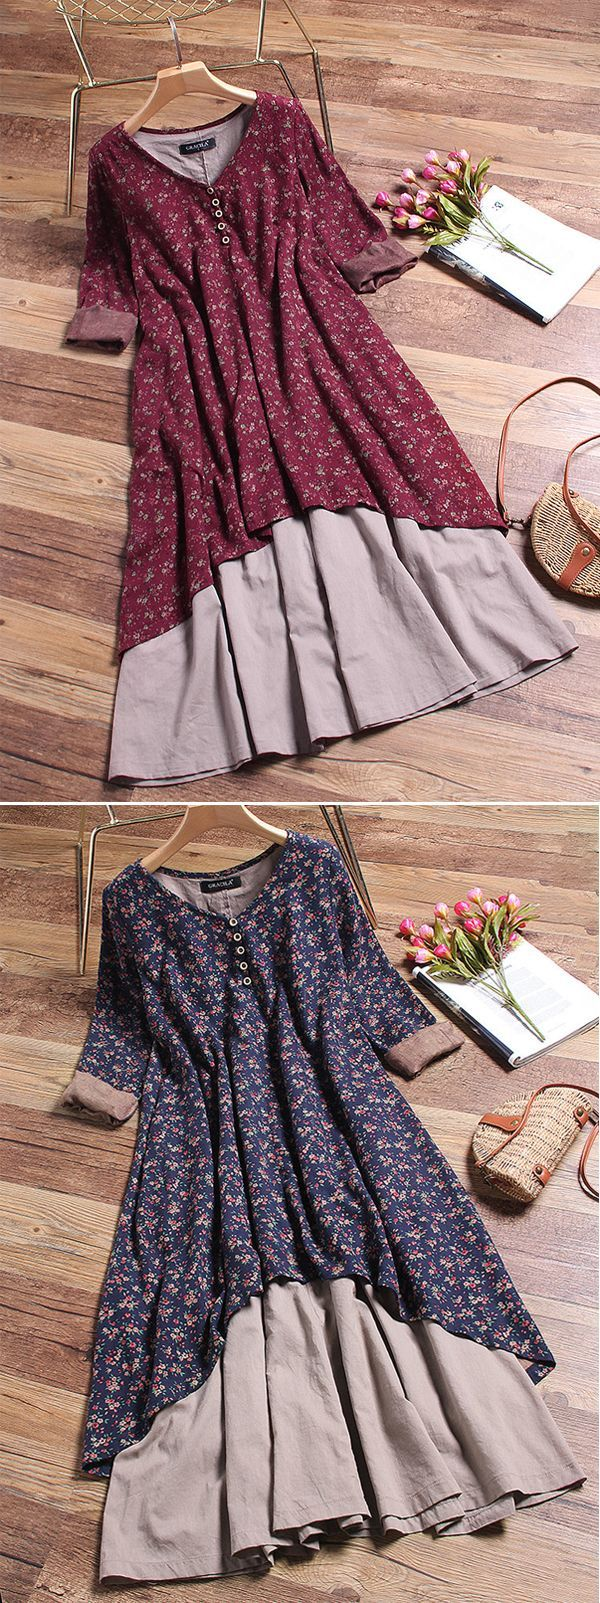 [Newchic Online Shopping] 48%OFF Gracila Vintage Double Layered Dresses with Long Sleeve and Floral Print